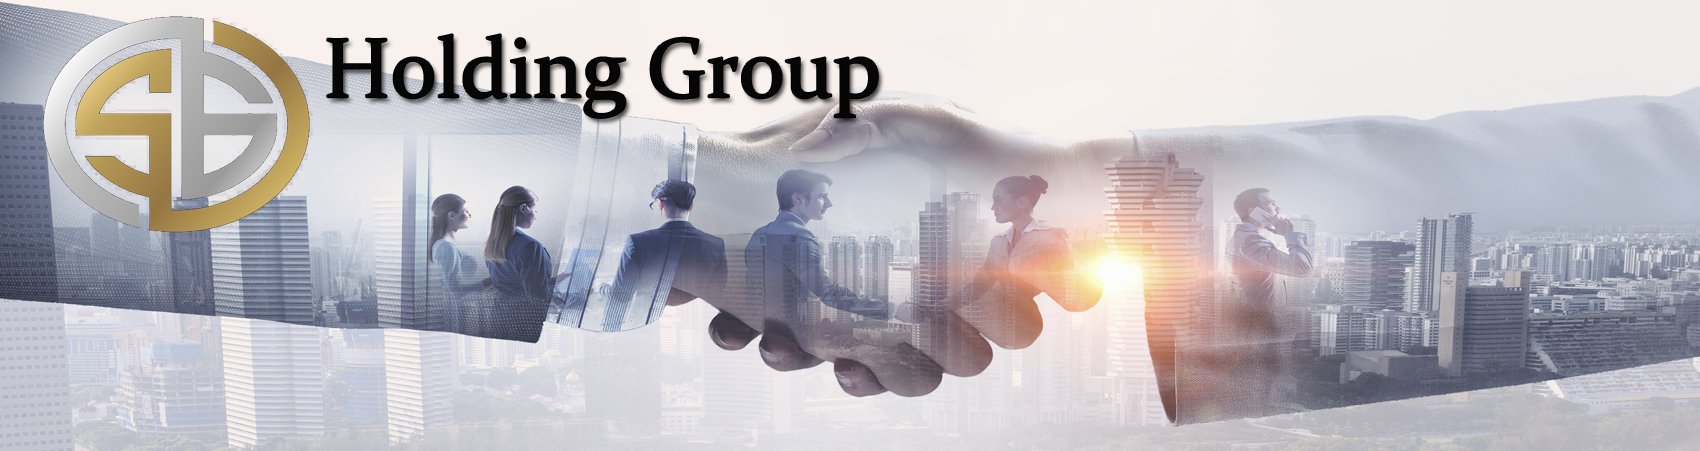 S & G Holding Group